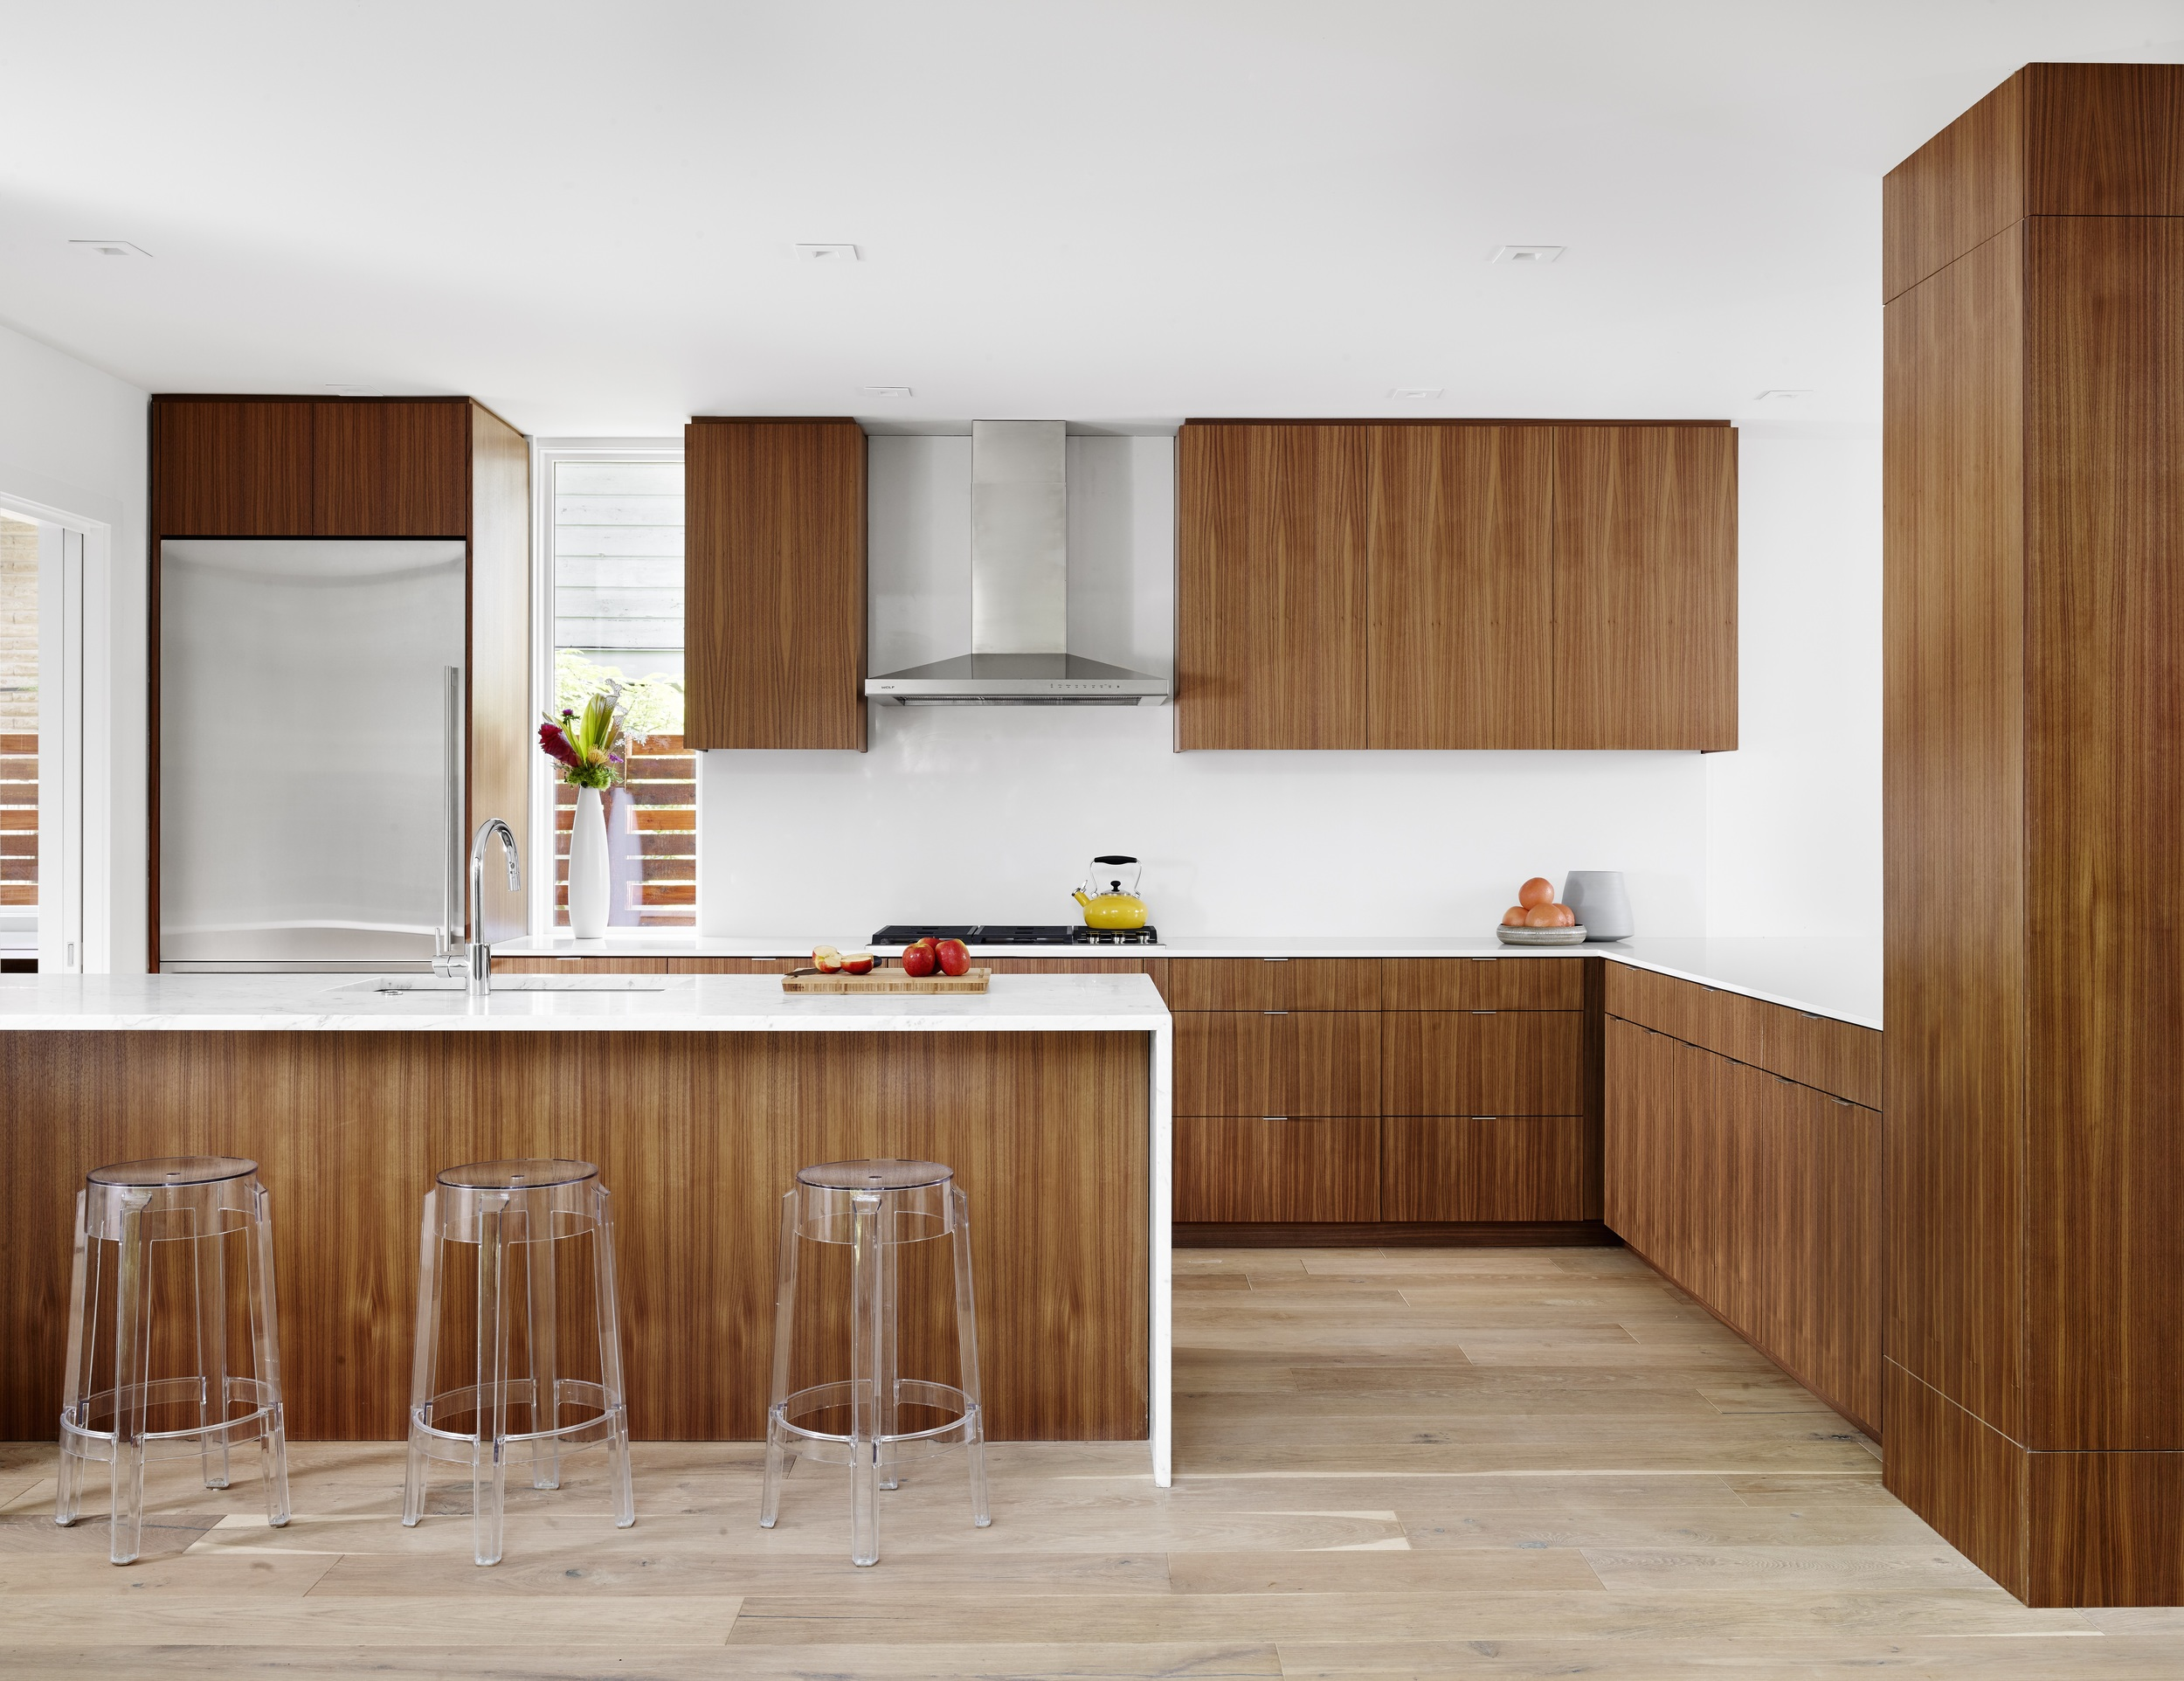 kitchen59574.jpg